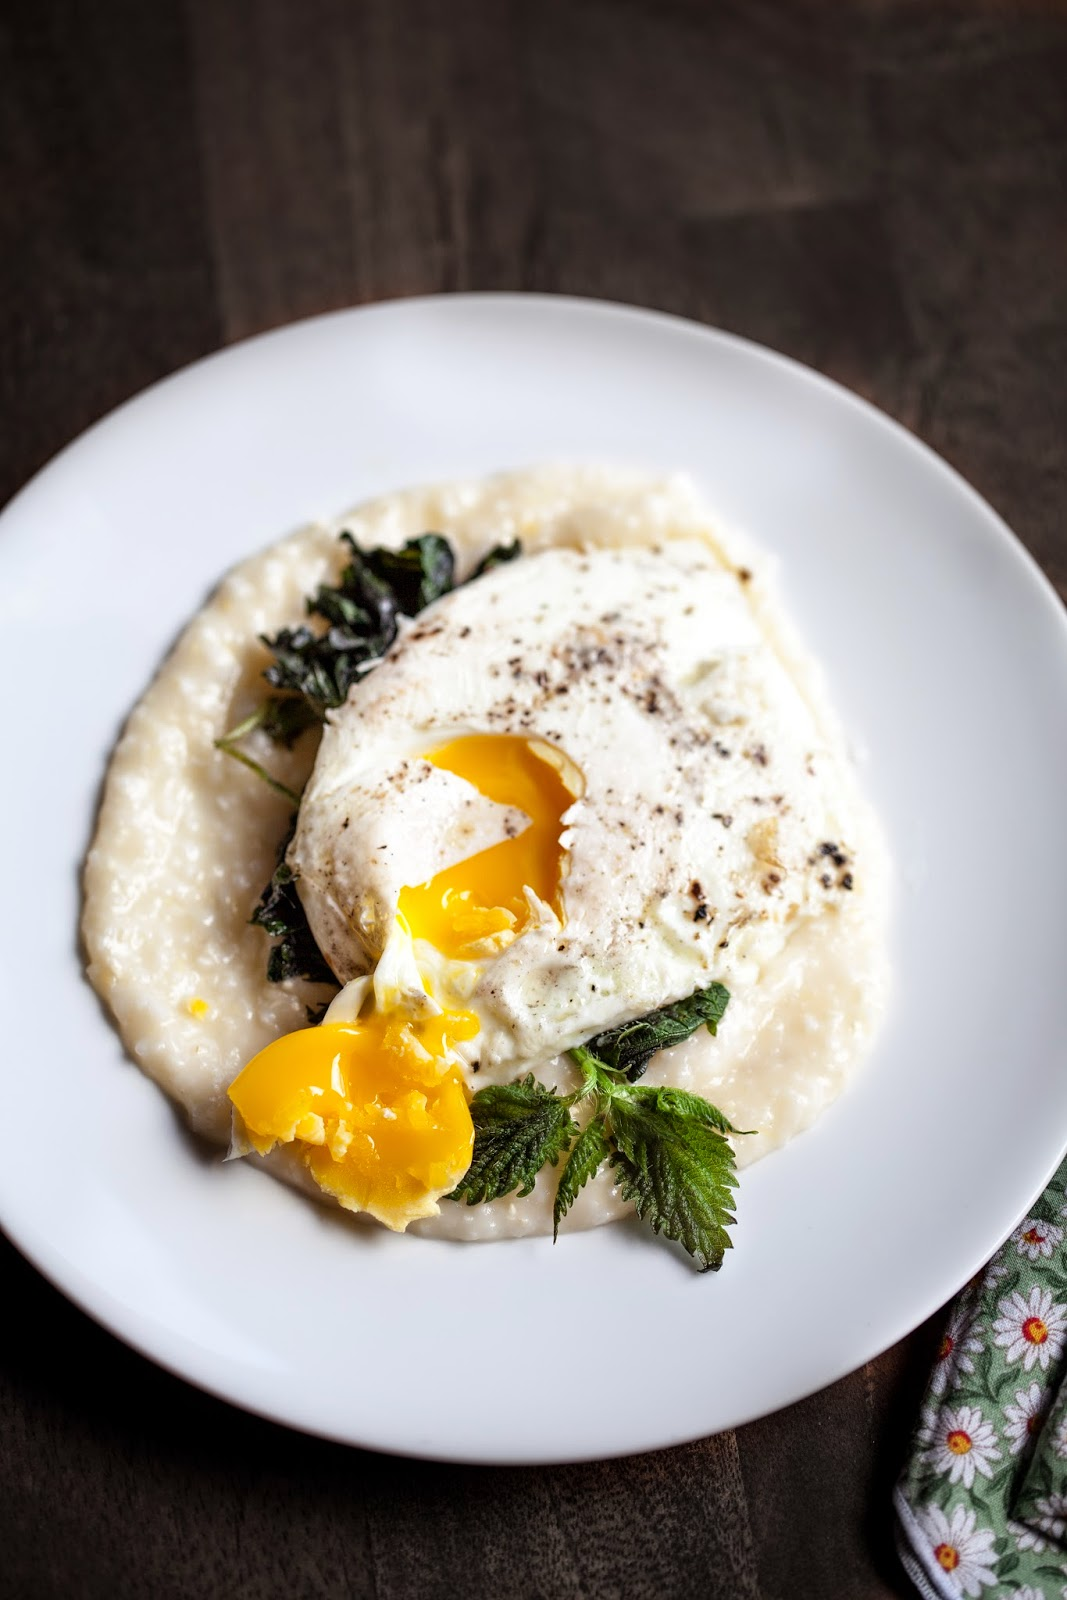 Stinging Nettle with an Egg and Creamy, Cheesy Grits